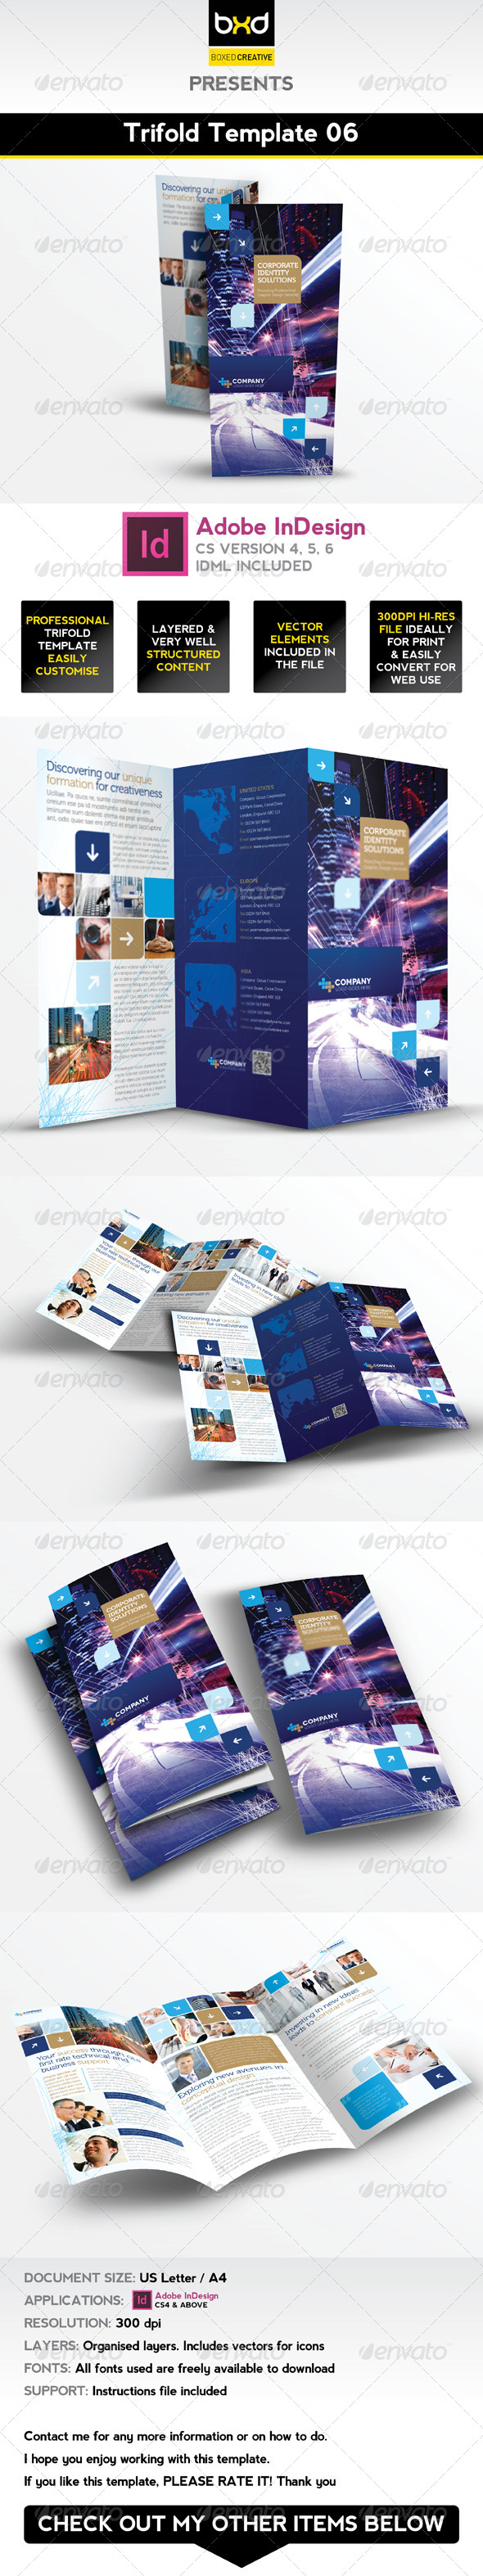 GraphicRiver Trifold Brochure Template 06 InDesign Layout 4994878